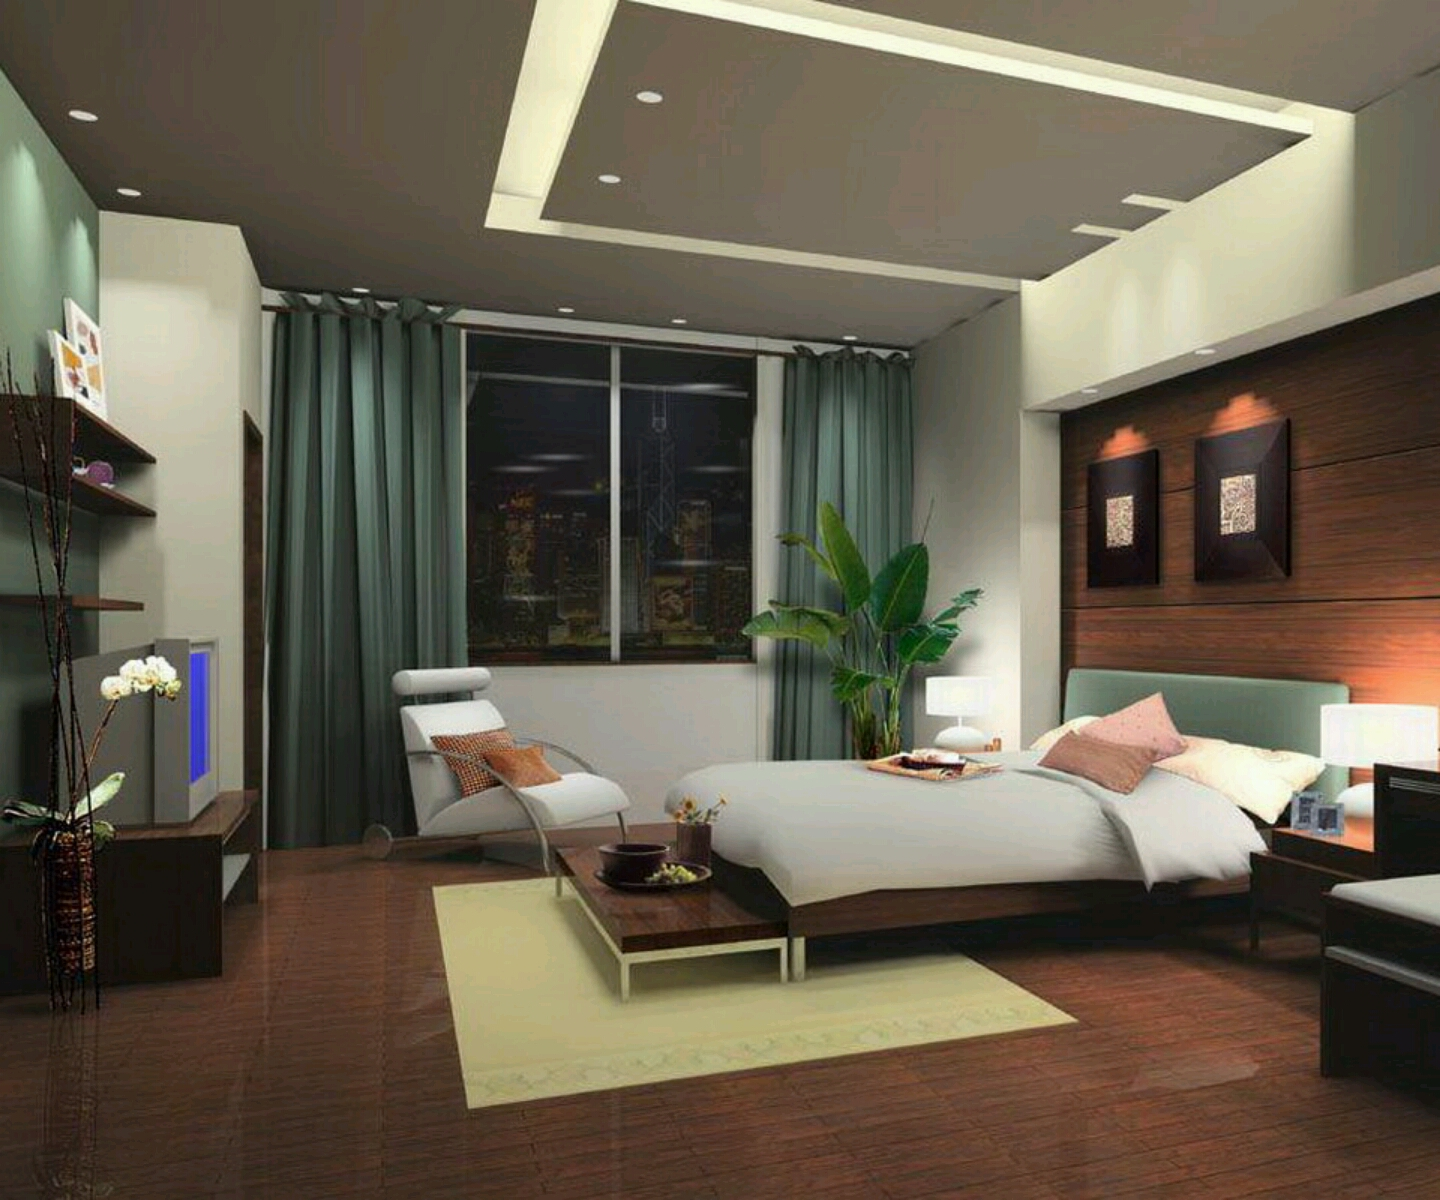 New home designs latest modern bedrooms designs best ideas for Four bedroom design